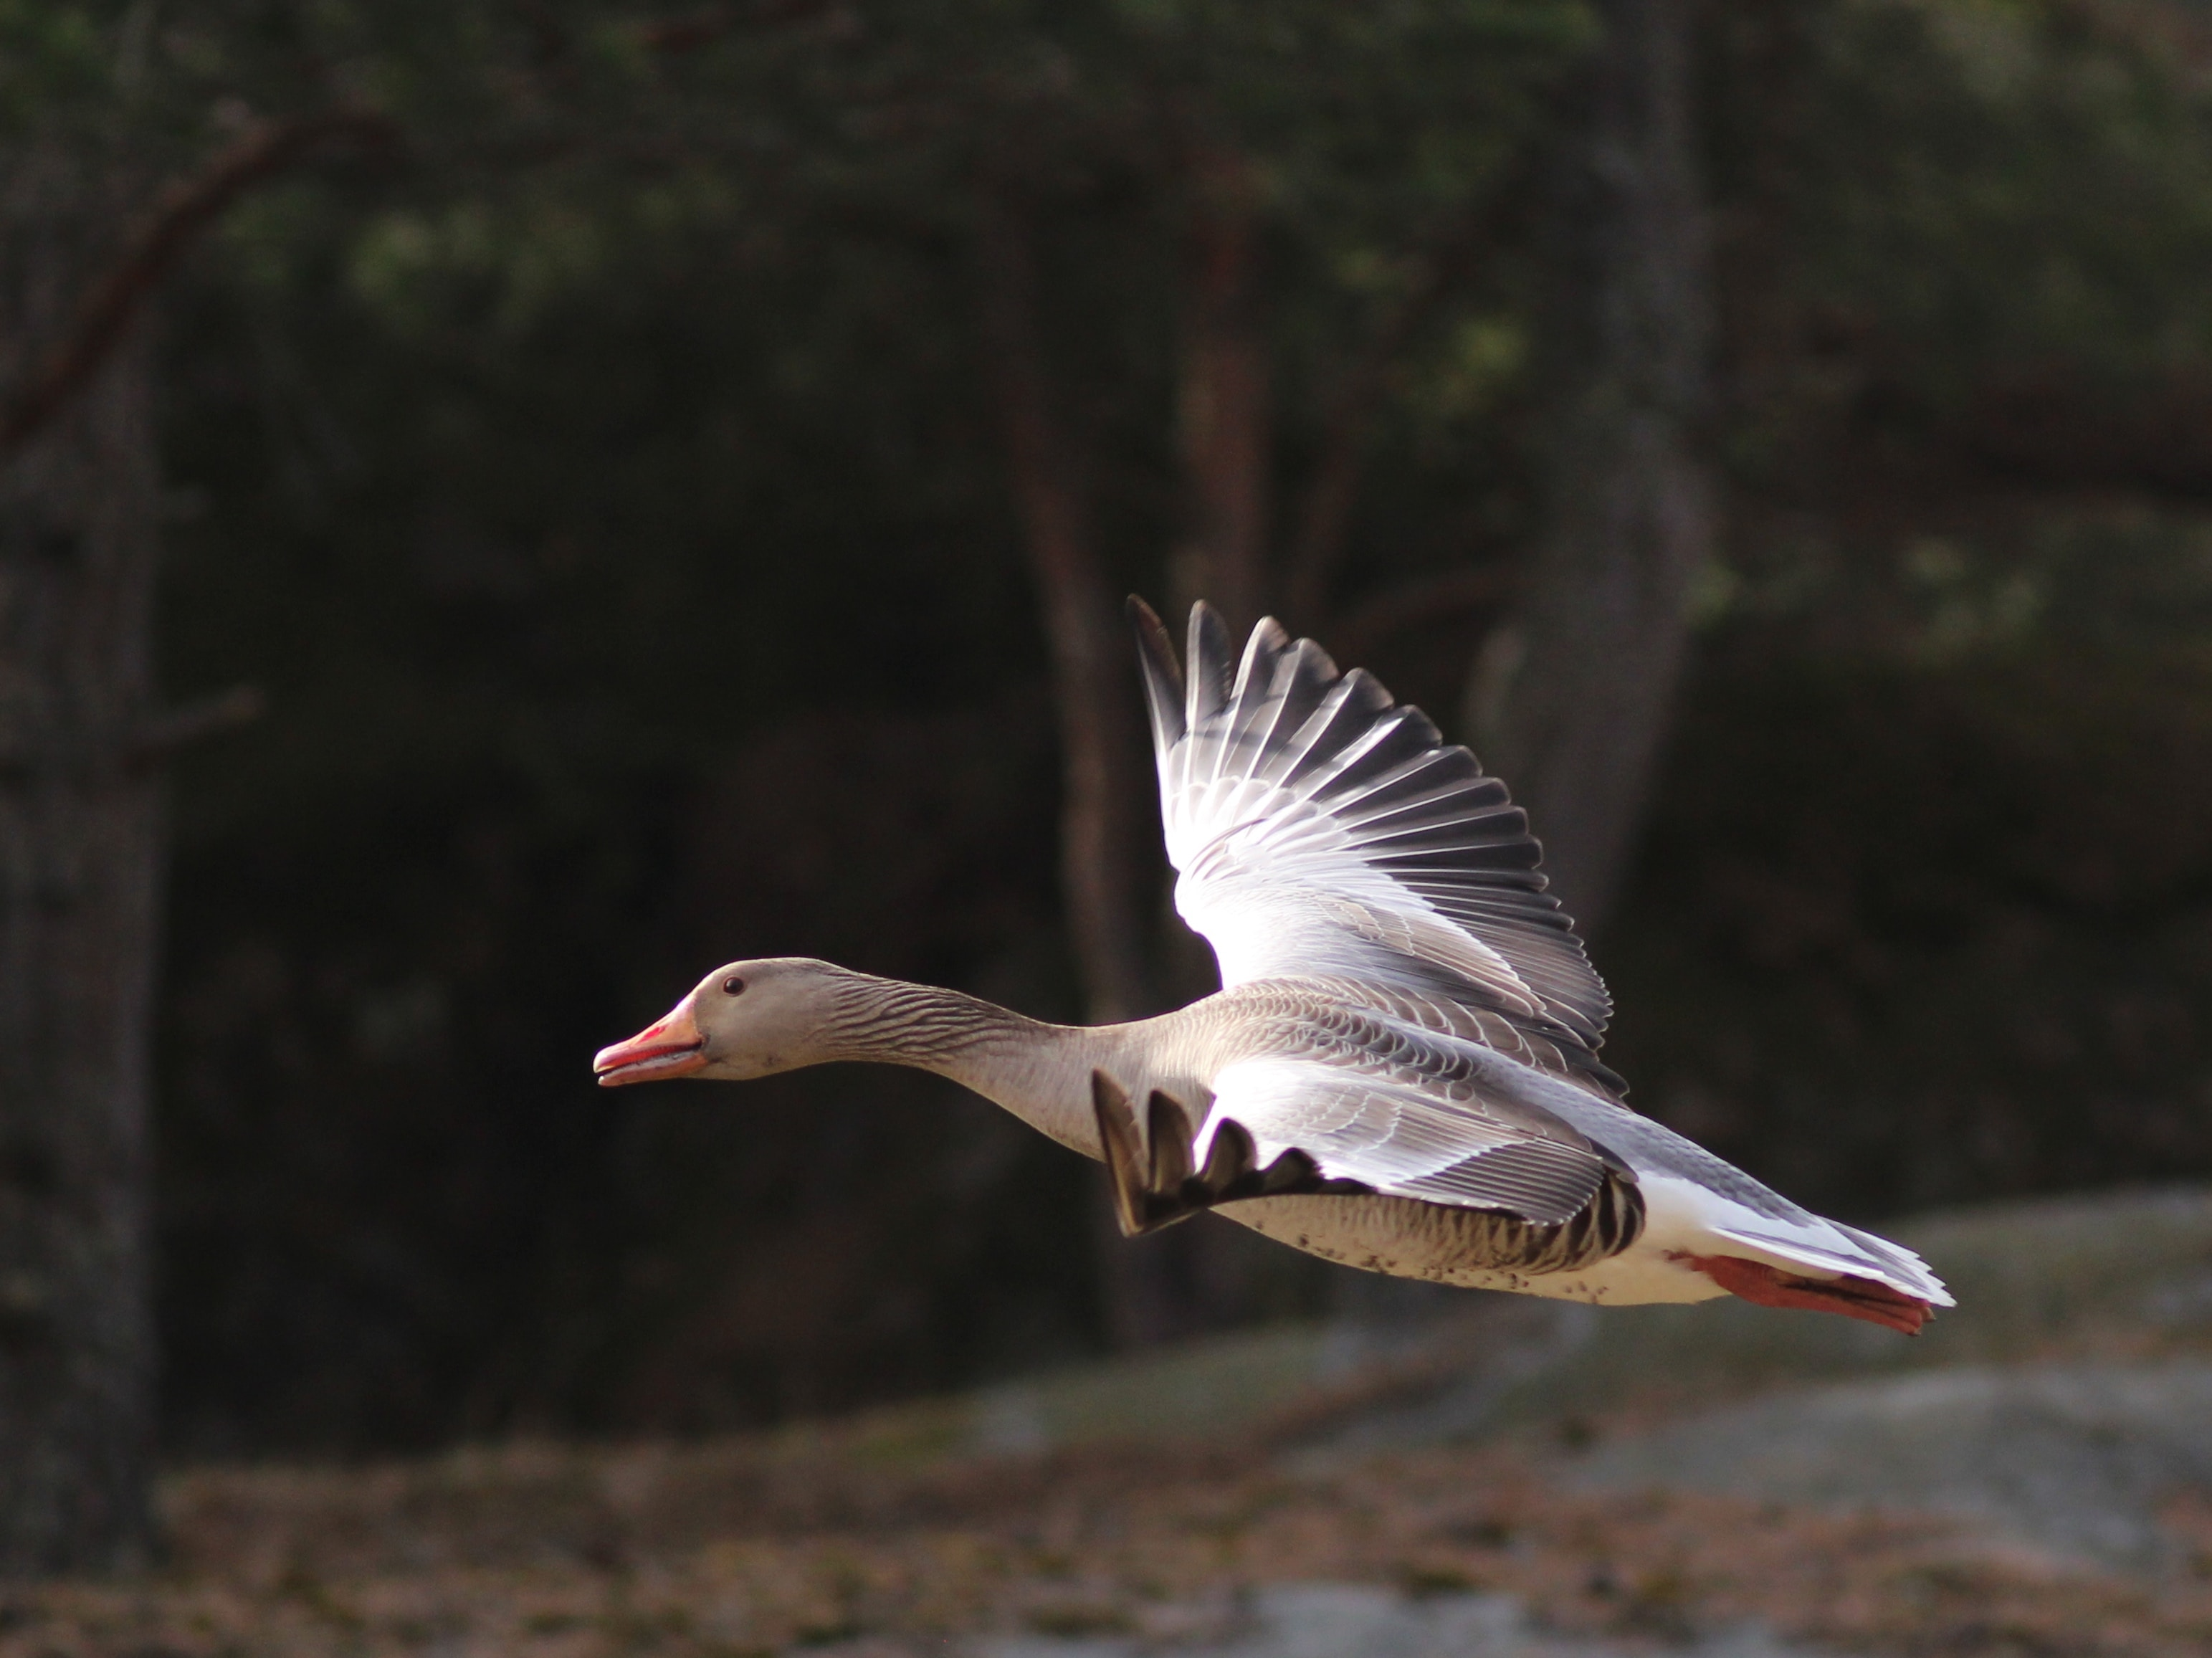 SNH defends geese culling